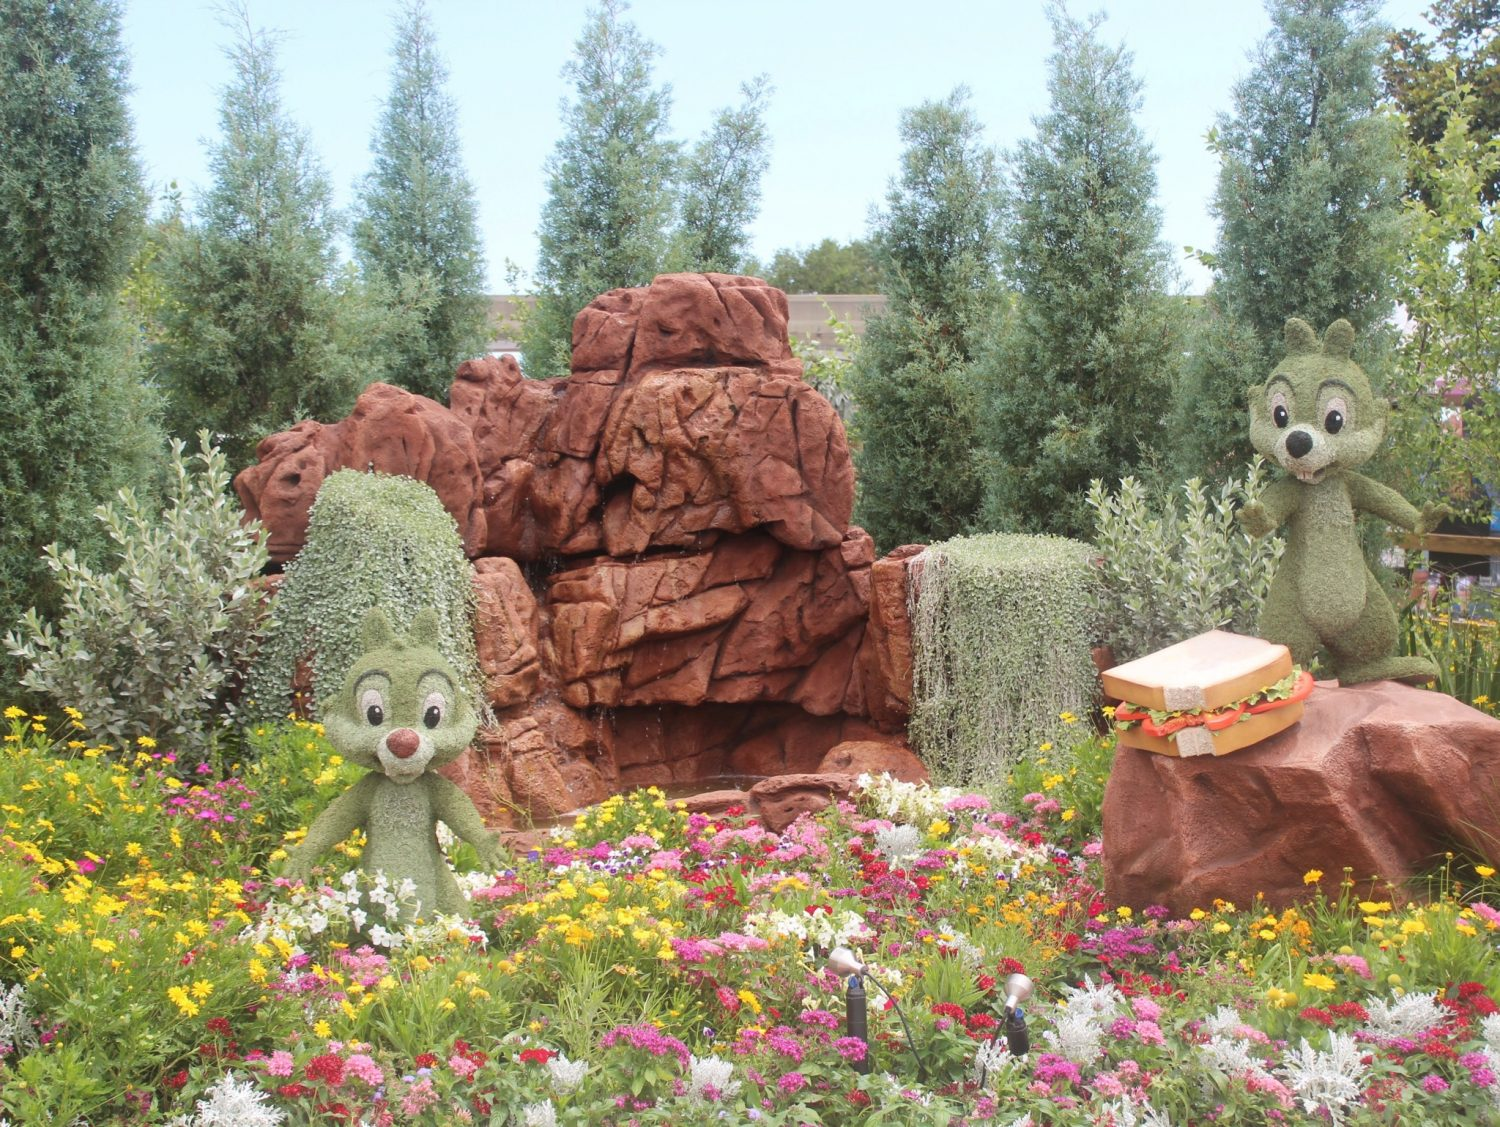 Epcot International Flower and Garden Festival Chip 'n Dale